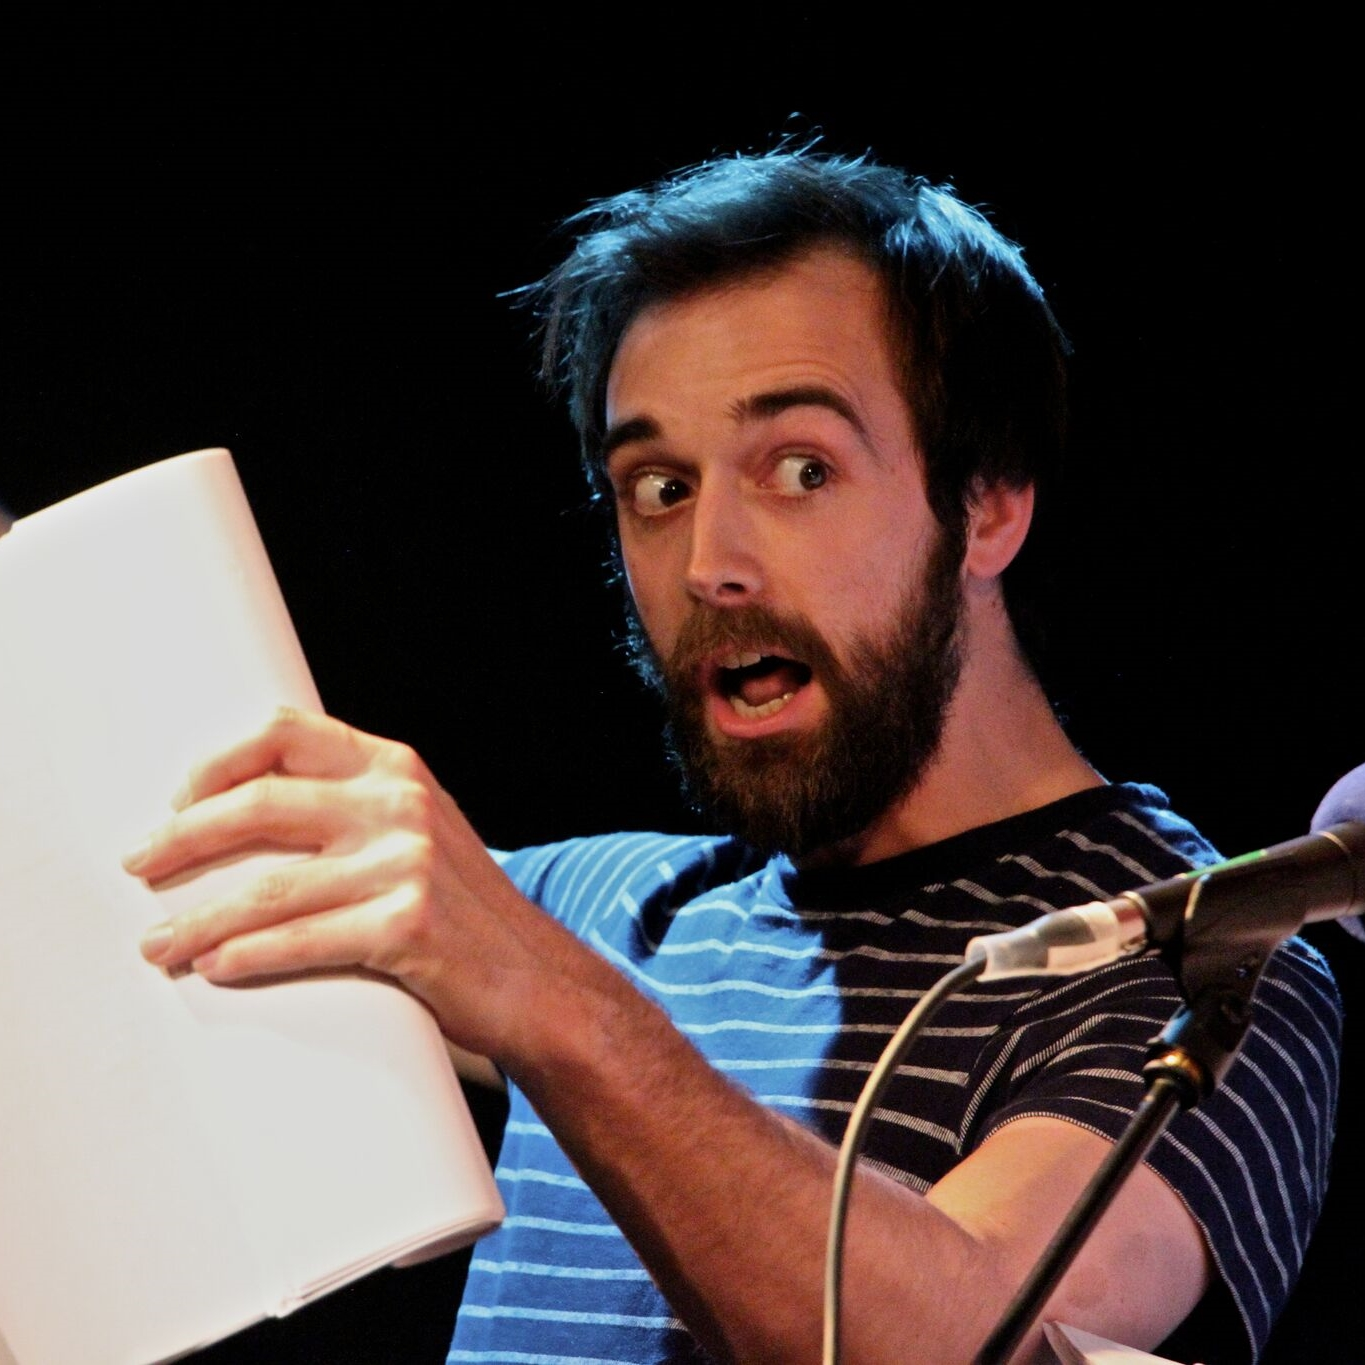 Richard Soames - George     Richard Soames  is an actor, writer, comedian and improviser. He is one quarter of Chortle-Award nominated sketch group  The Beta Males  and in 2015 took his debut solo show to The Edinburgh Festival, where  he also co-wrote and performed in The Foster's Best Newcomer Award Nominated show The Story Beast. Richard improvises regularly with Monkey Toast UK and has guested with Grand Theft Impro and Austentatious. He is currently developing new solo material and projects for radio and television.